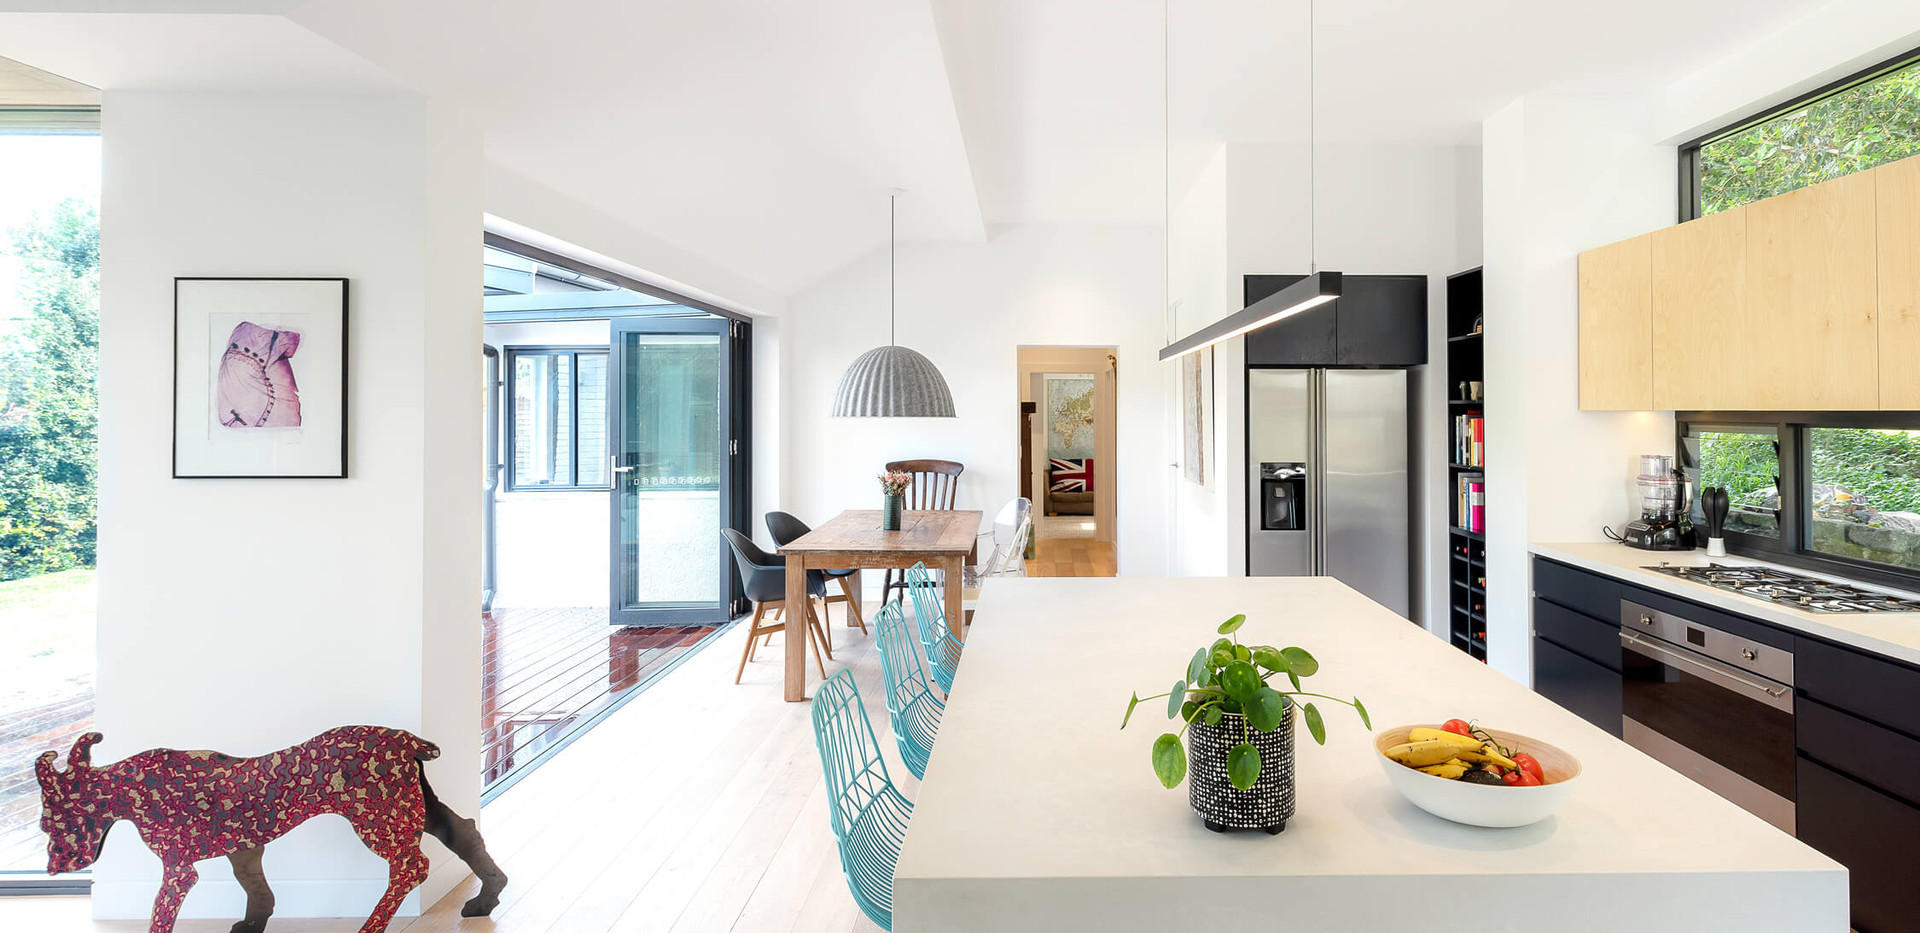 Boyle Street Balgowlah - residential kitchen interior design